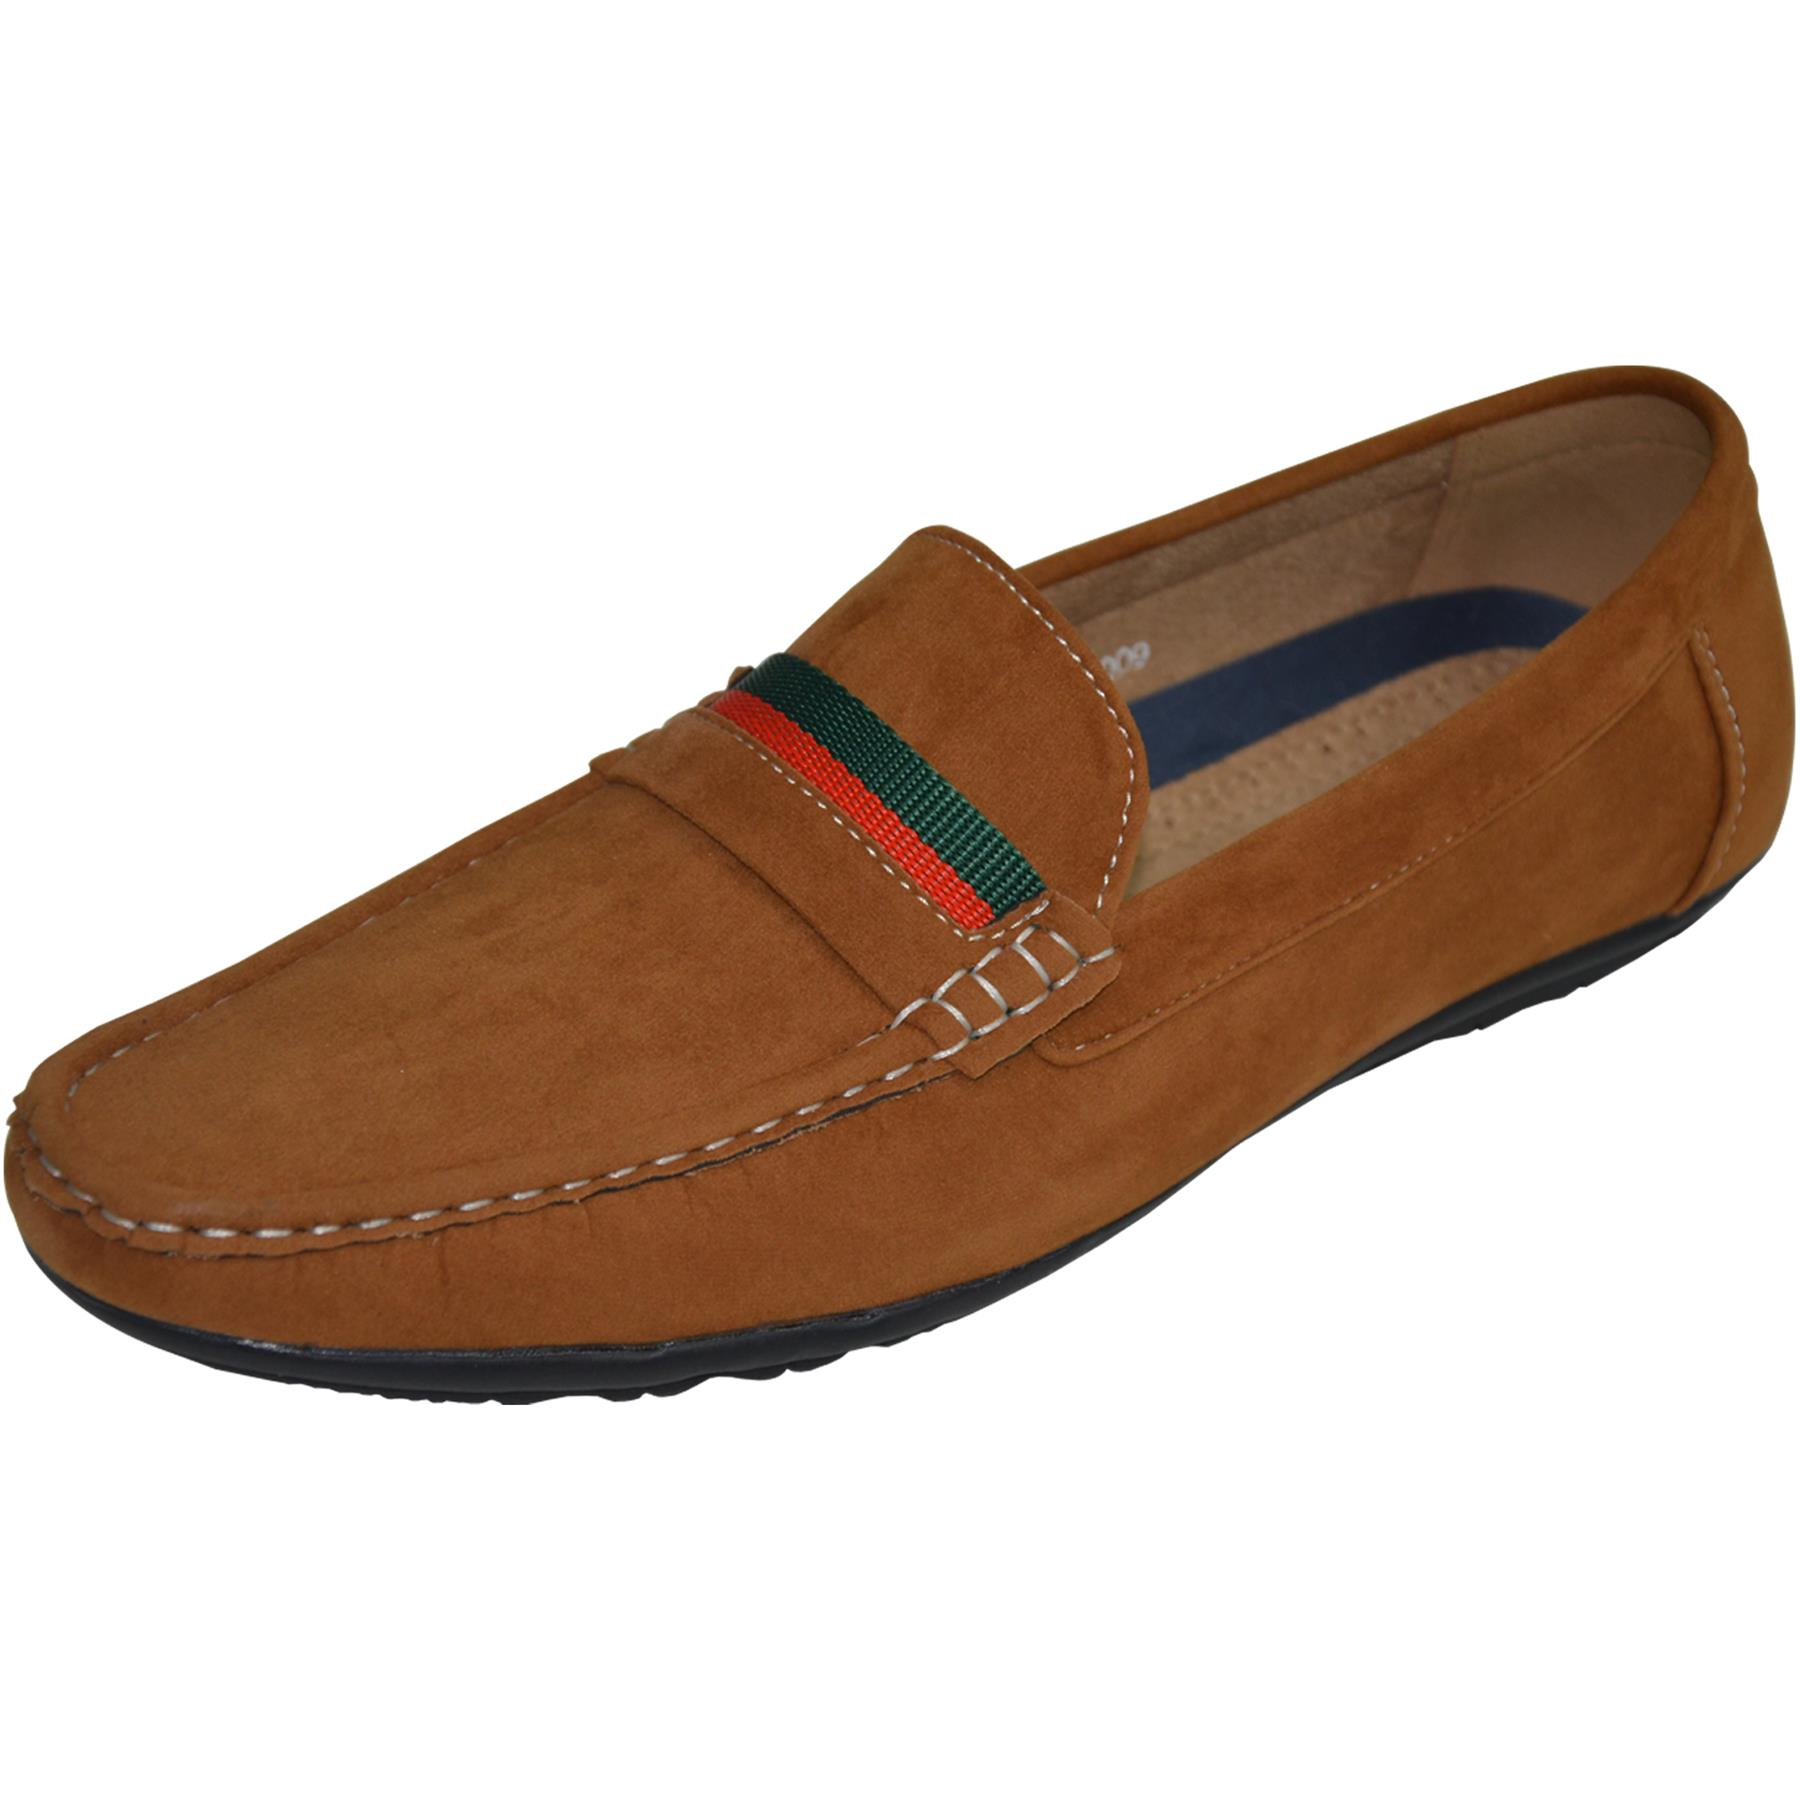 Mens-Slip-Ons-Shoes-Boat-Deck-Driving-Smart-Buckle-Moccasins-Suede-Look-Loafers thumbnail 28